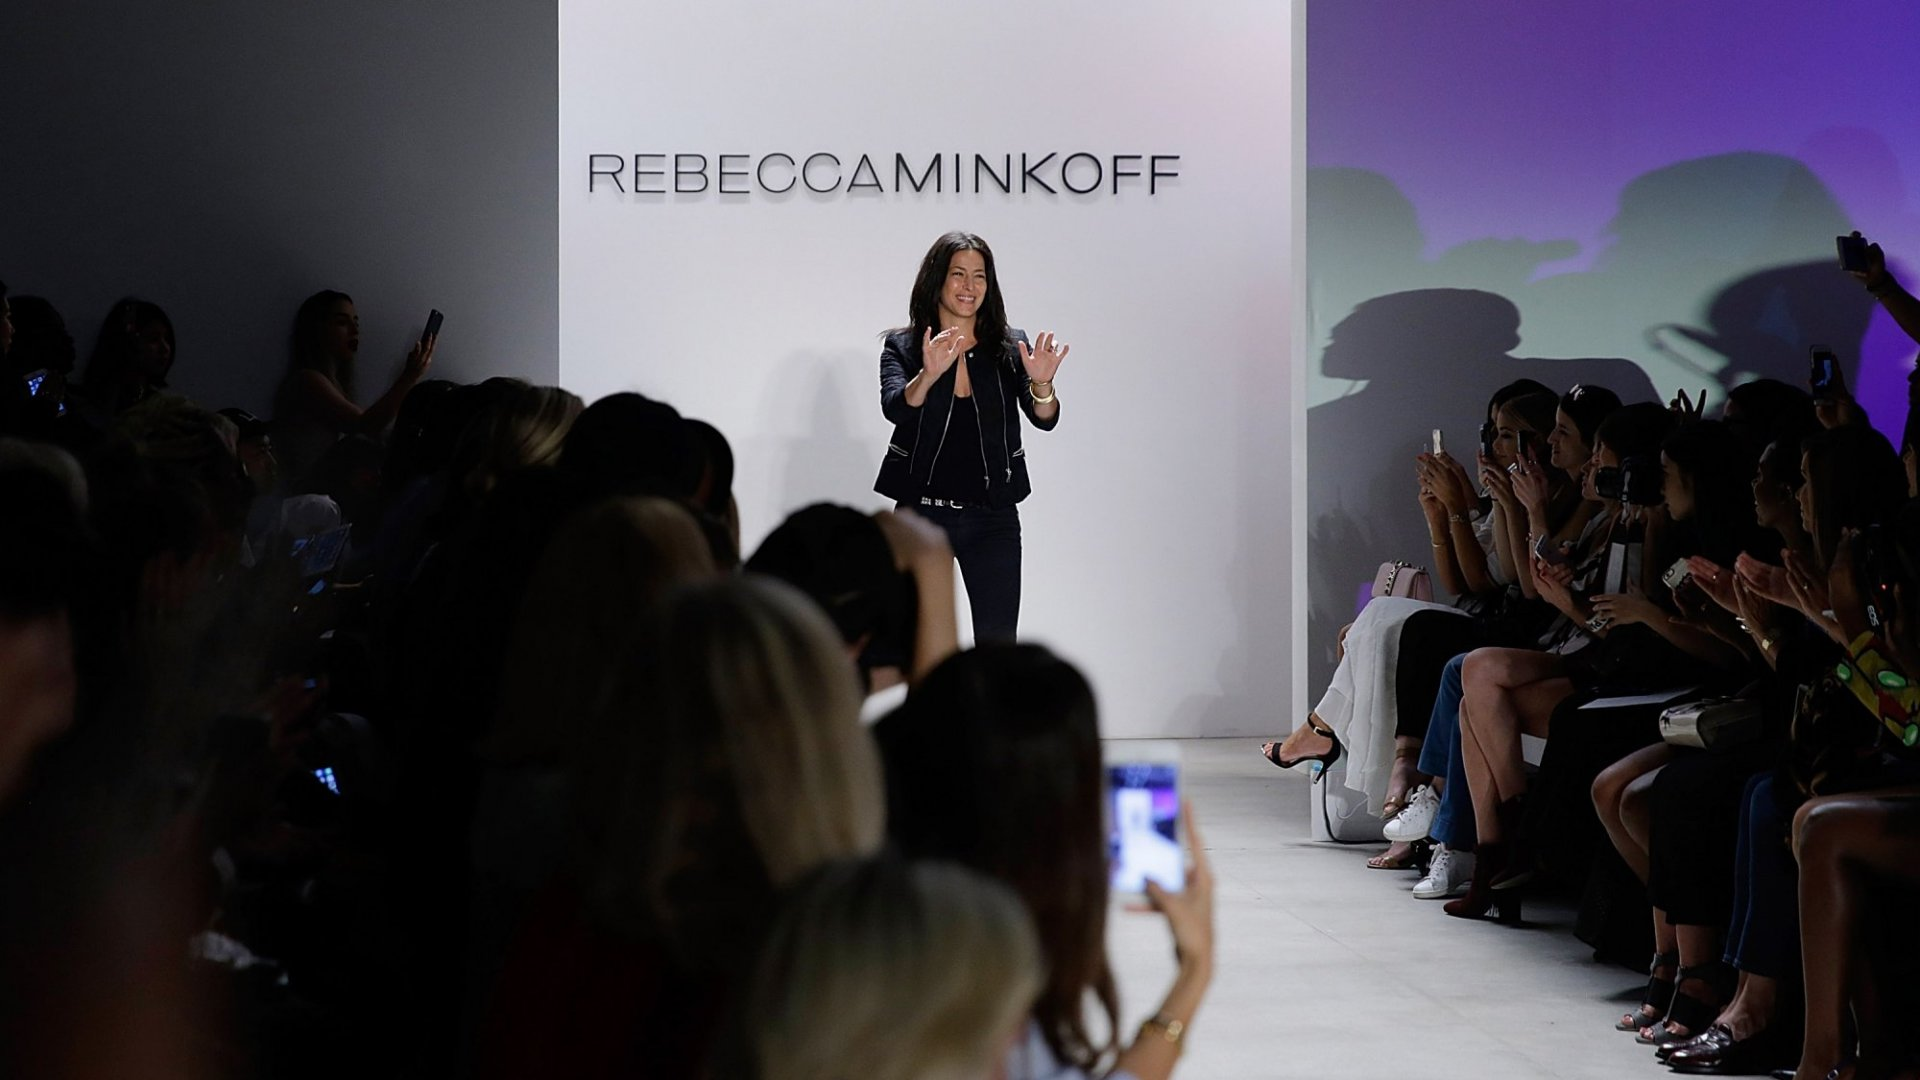 Rebecca Minkoff on the Surprising Benefits of a Supply Chain Shift